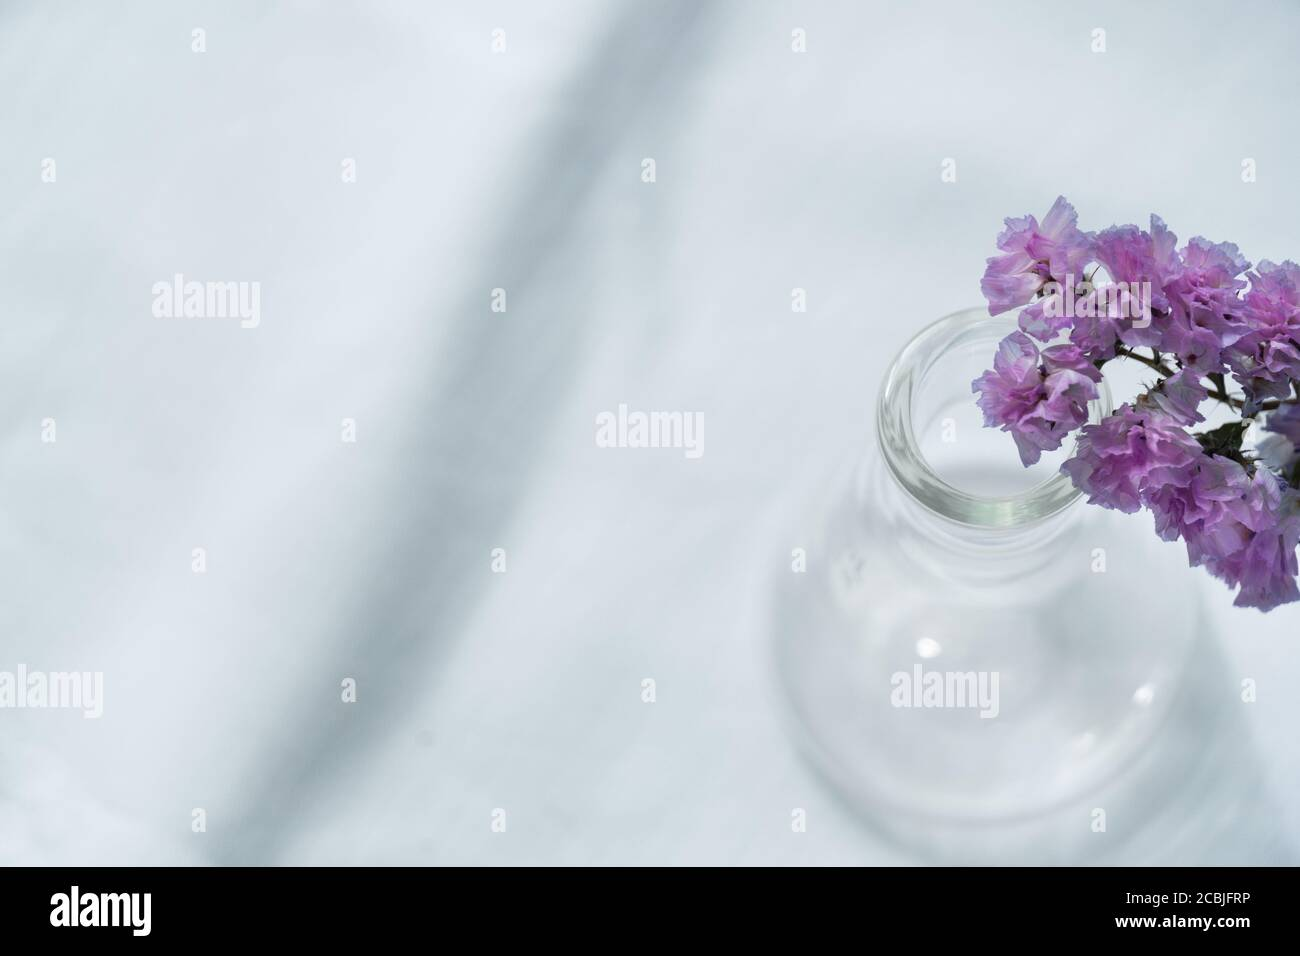 soft purple or violet flower from the top of glass science flask vase for  natural cosmetic research fabric on white fabric background Stock Photo